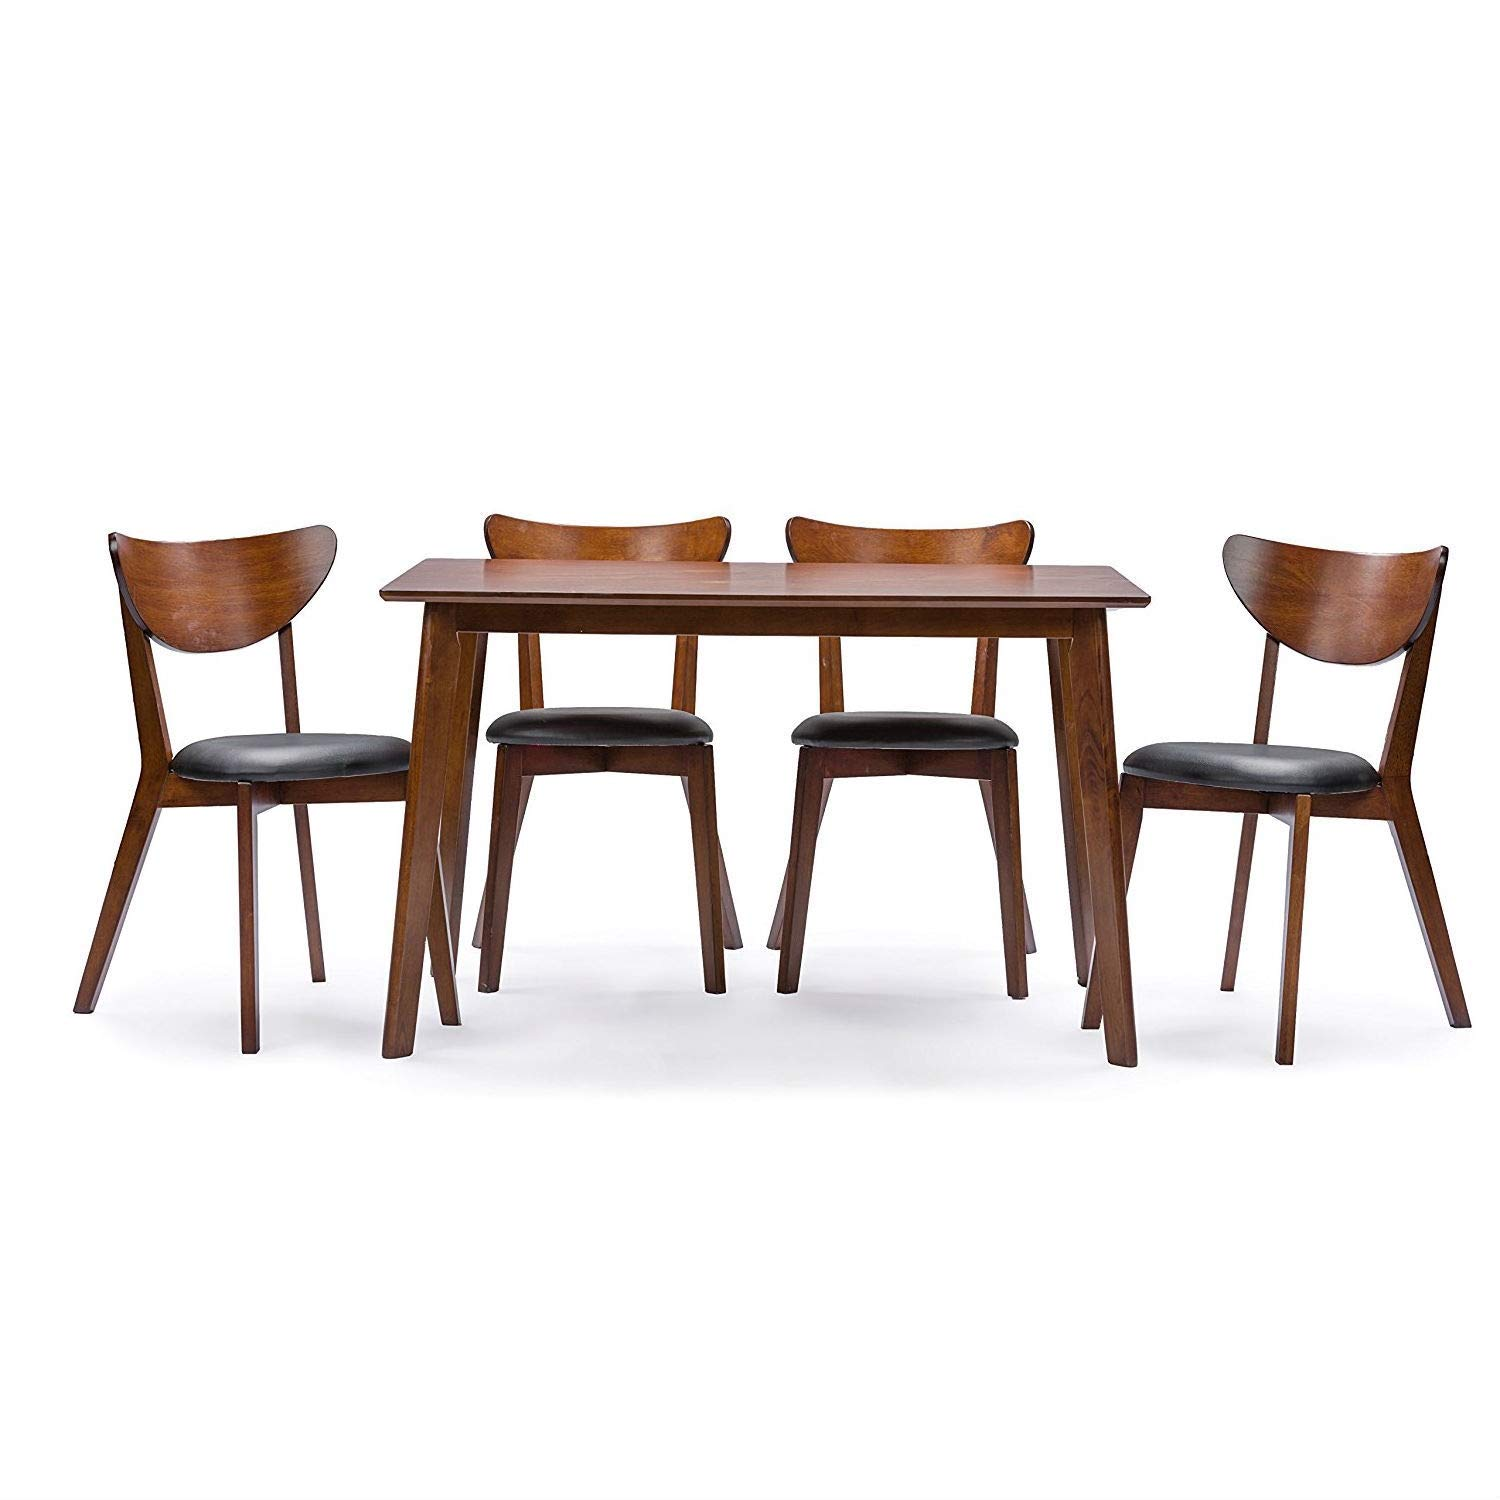 BeUniqueToday Modern Mid-Century Style 5-Piece Dining Set in Dark Brown Walnut Finish, Showcasing Mid-Century Style Designs this Five-Piece Set Features Four Chairs and A Sturdy Table for Years of Use